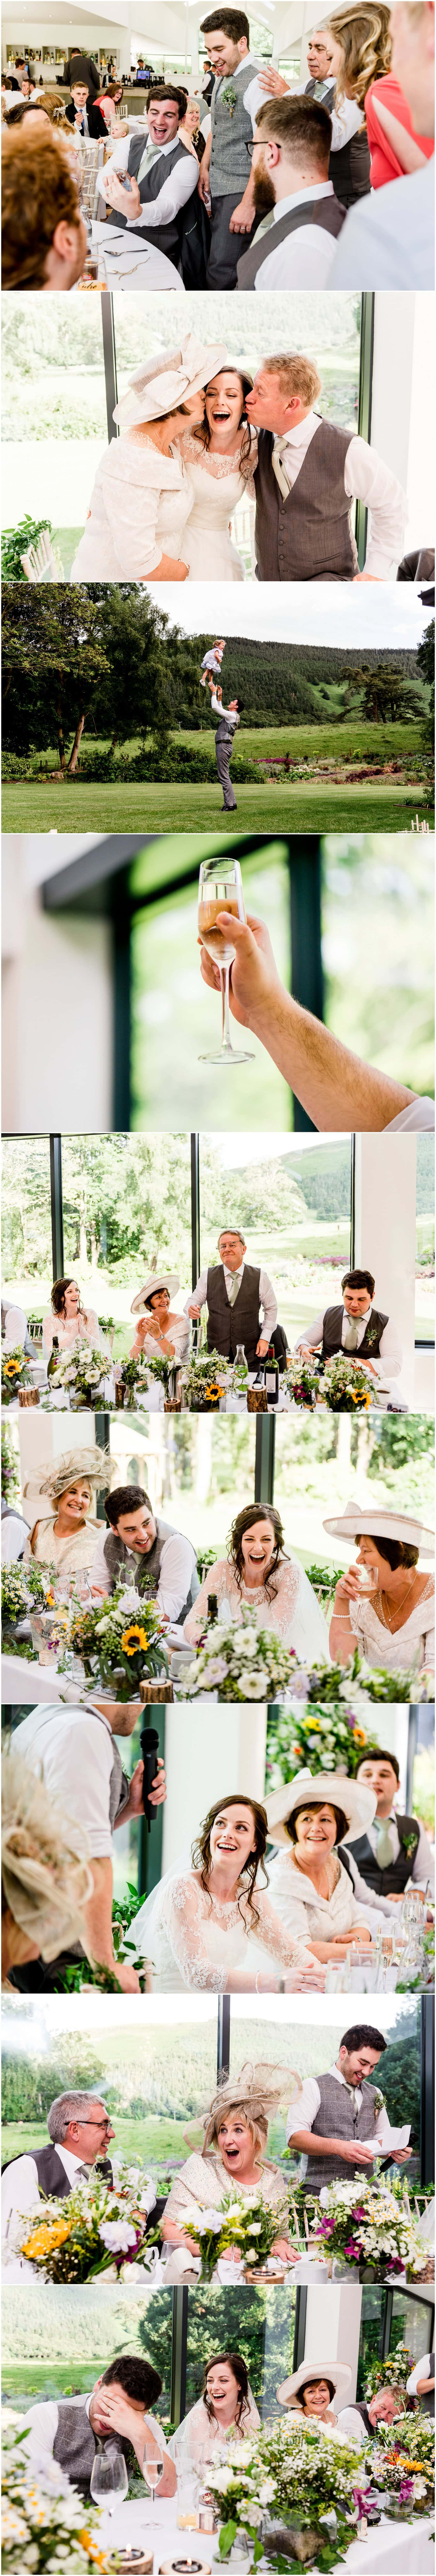 Ffion and Hefin's beautiful, elegant summer wedding at Ten Dwr Hall in Llangollen, Wales with wild flowers and sage colours by West Midlands and Wales Wedding photographer Lisa Carpenter Photography, specialising in cool, contemporary wedding photos. Speeches at Tyn Dwr.